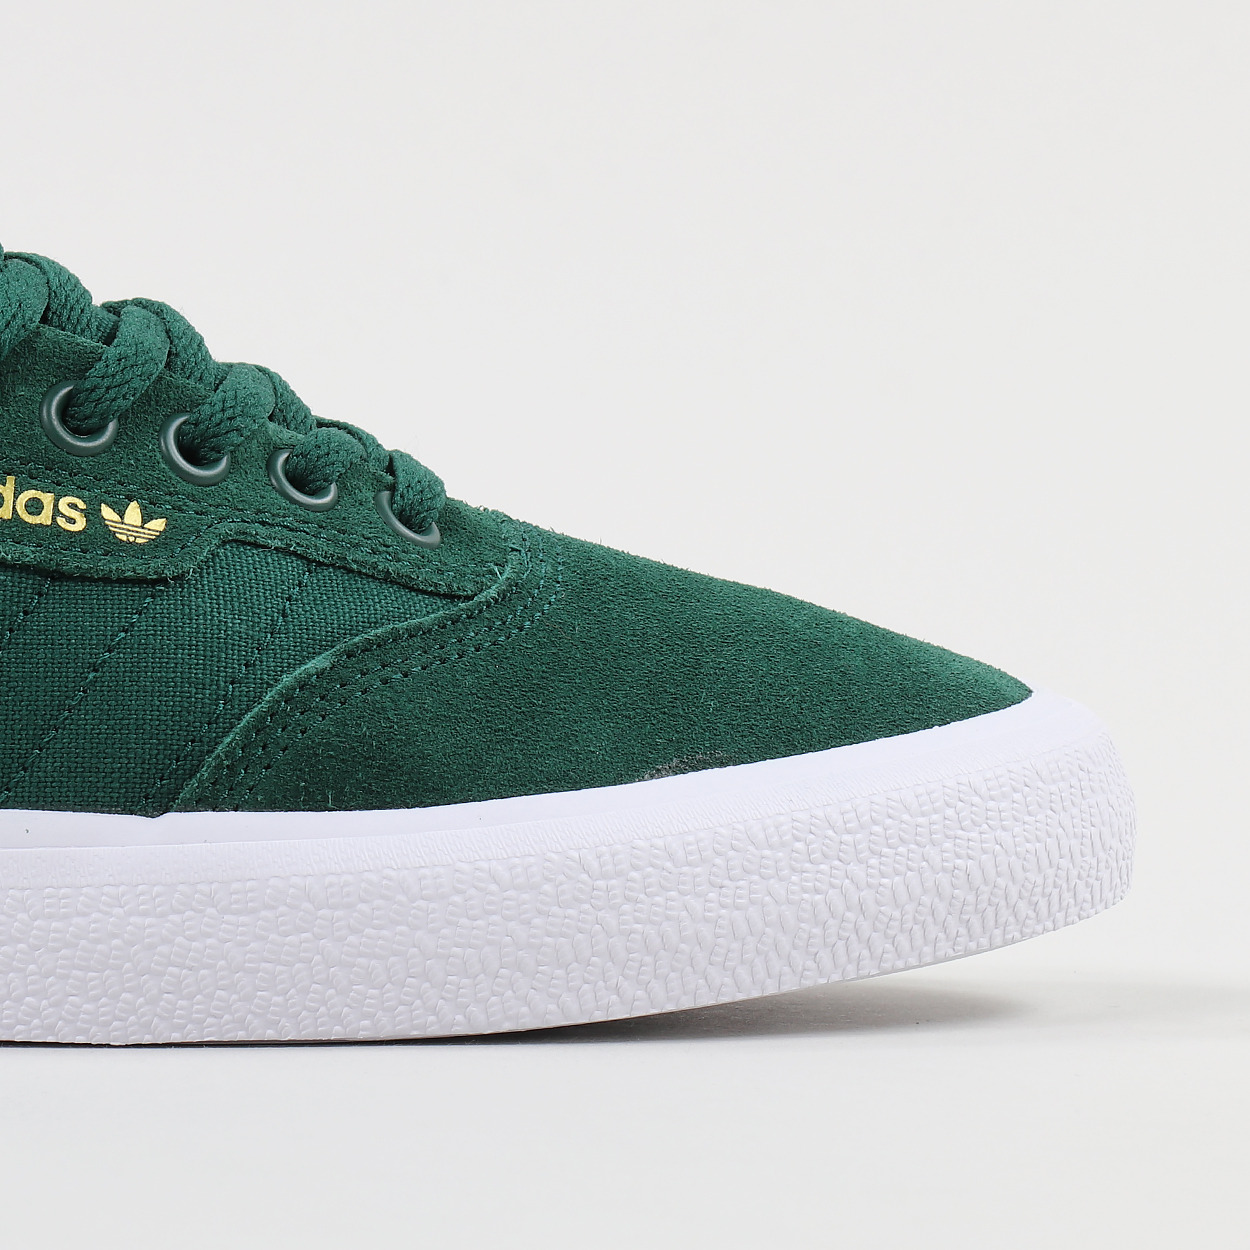 A pair of sneaks from adidas Skateboarding made from a blend of lightweight  canvas and suede in the uppers and a vulcanised rubber outsole with a  hexagonal ... 551de4b10